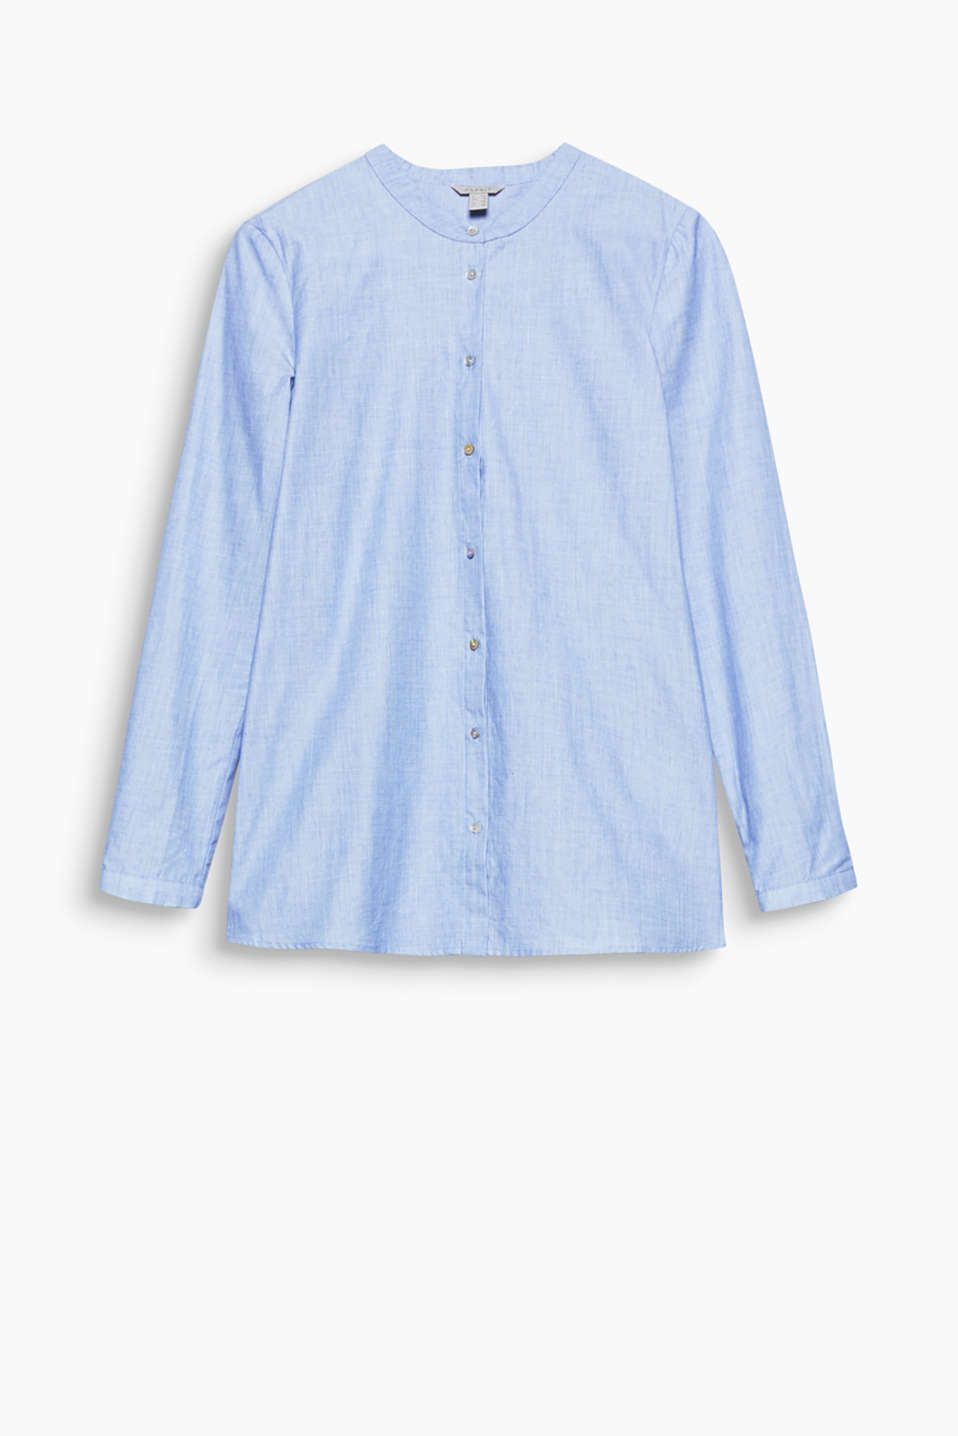 This pure cotton chambray shirt blouse with a stand-up collar can be worn with jeans or a business suit